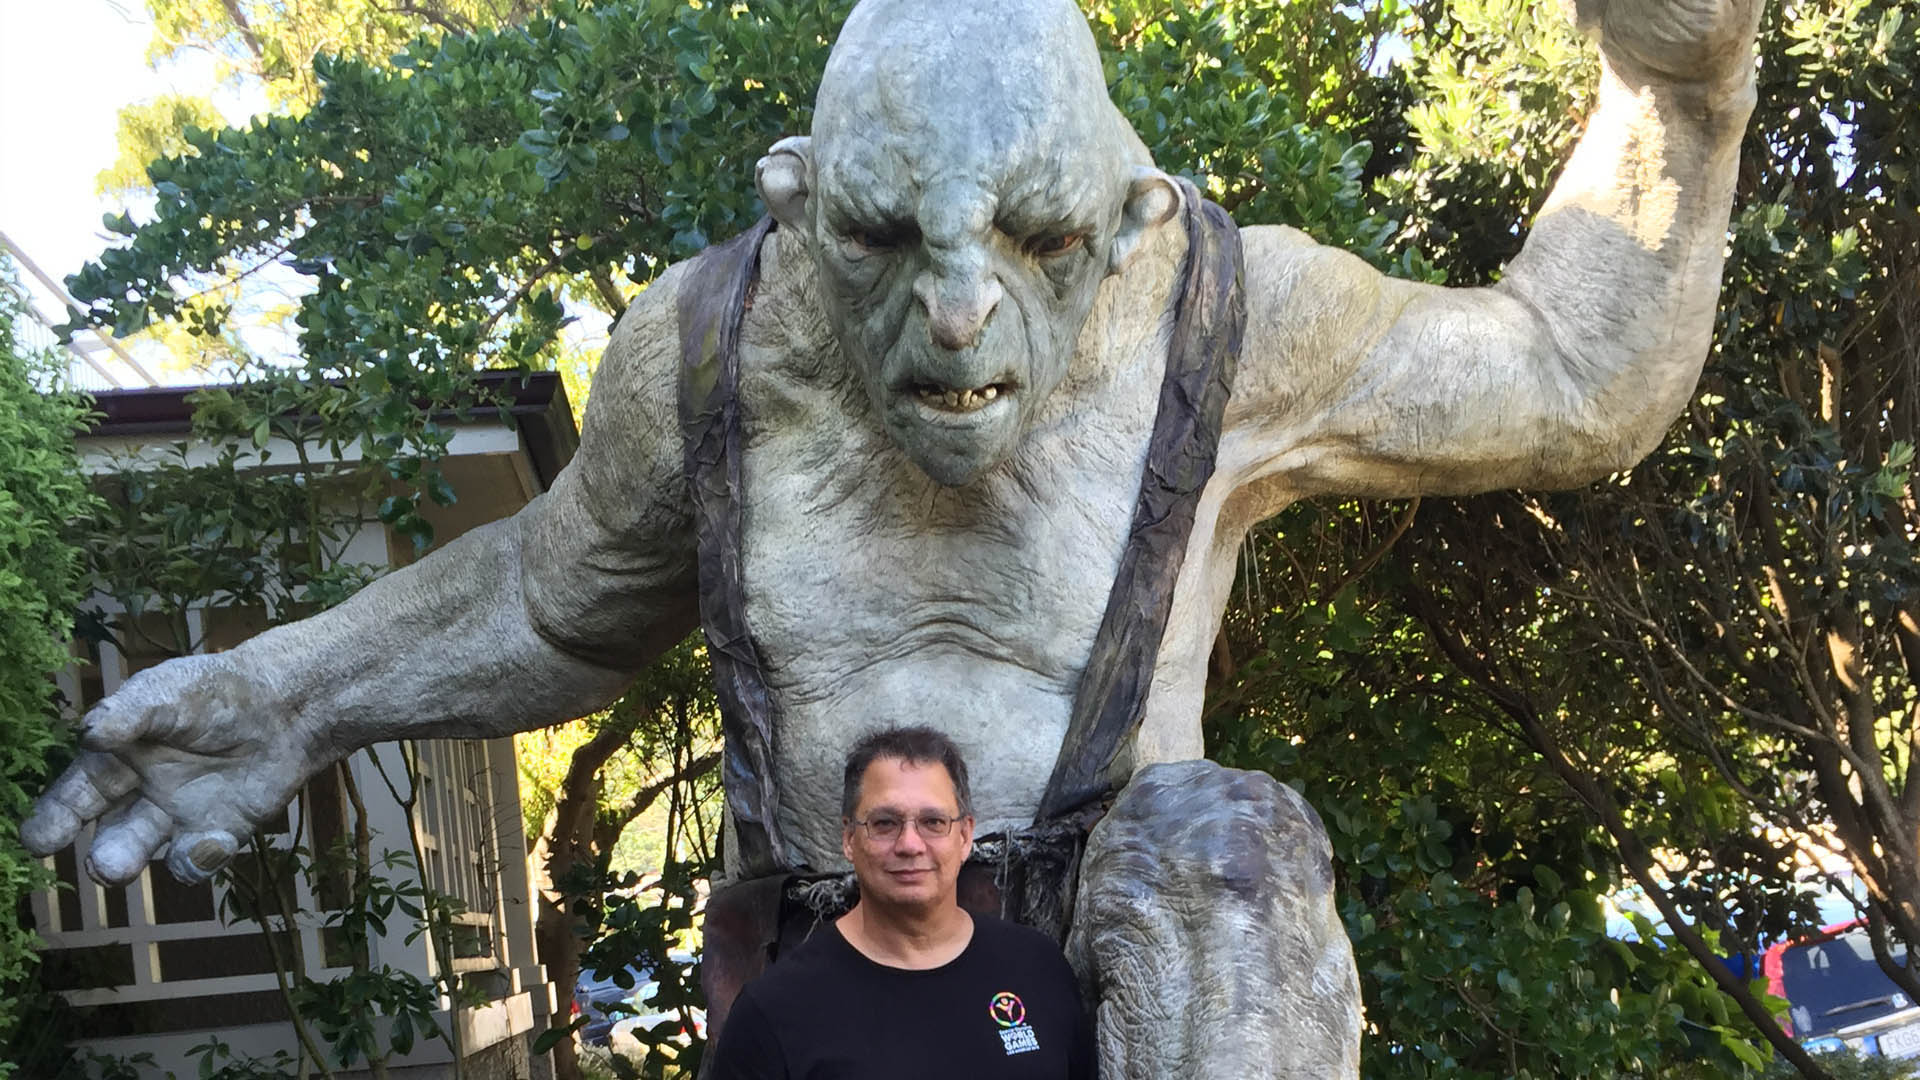 The Weta Cave In Miramar